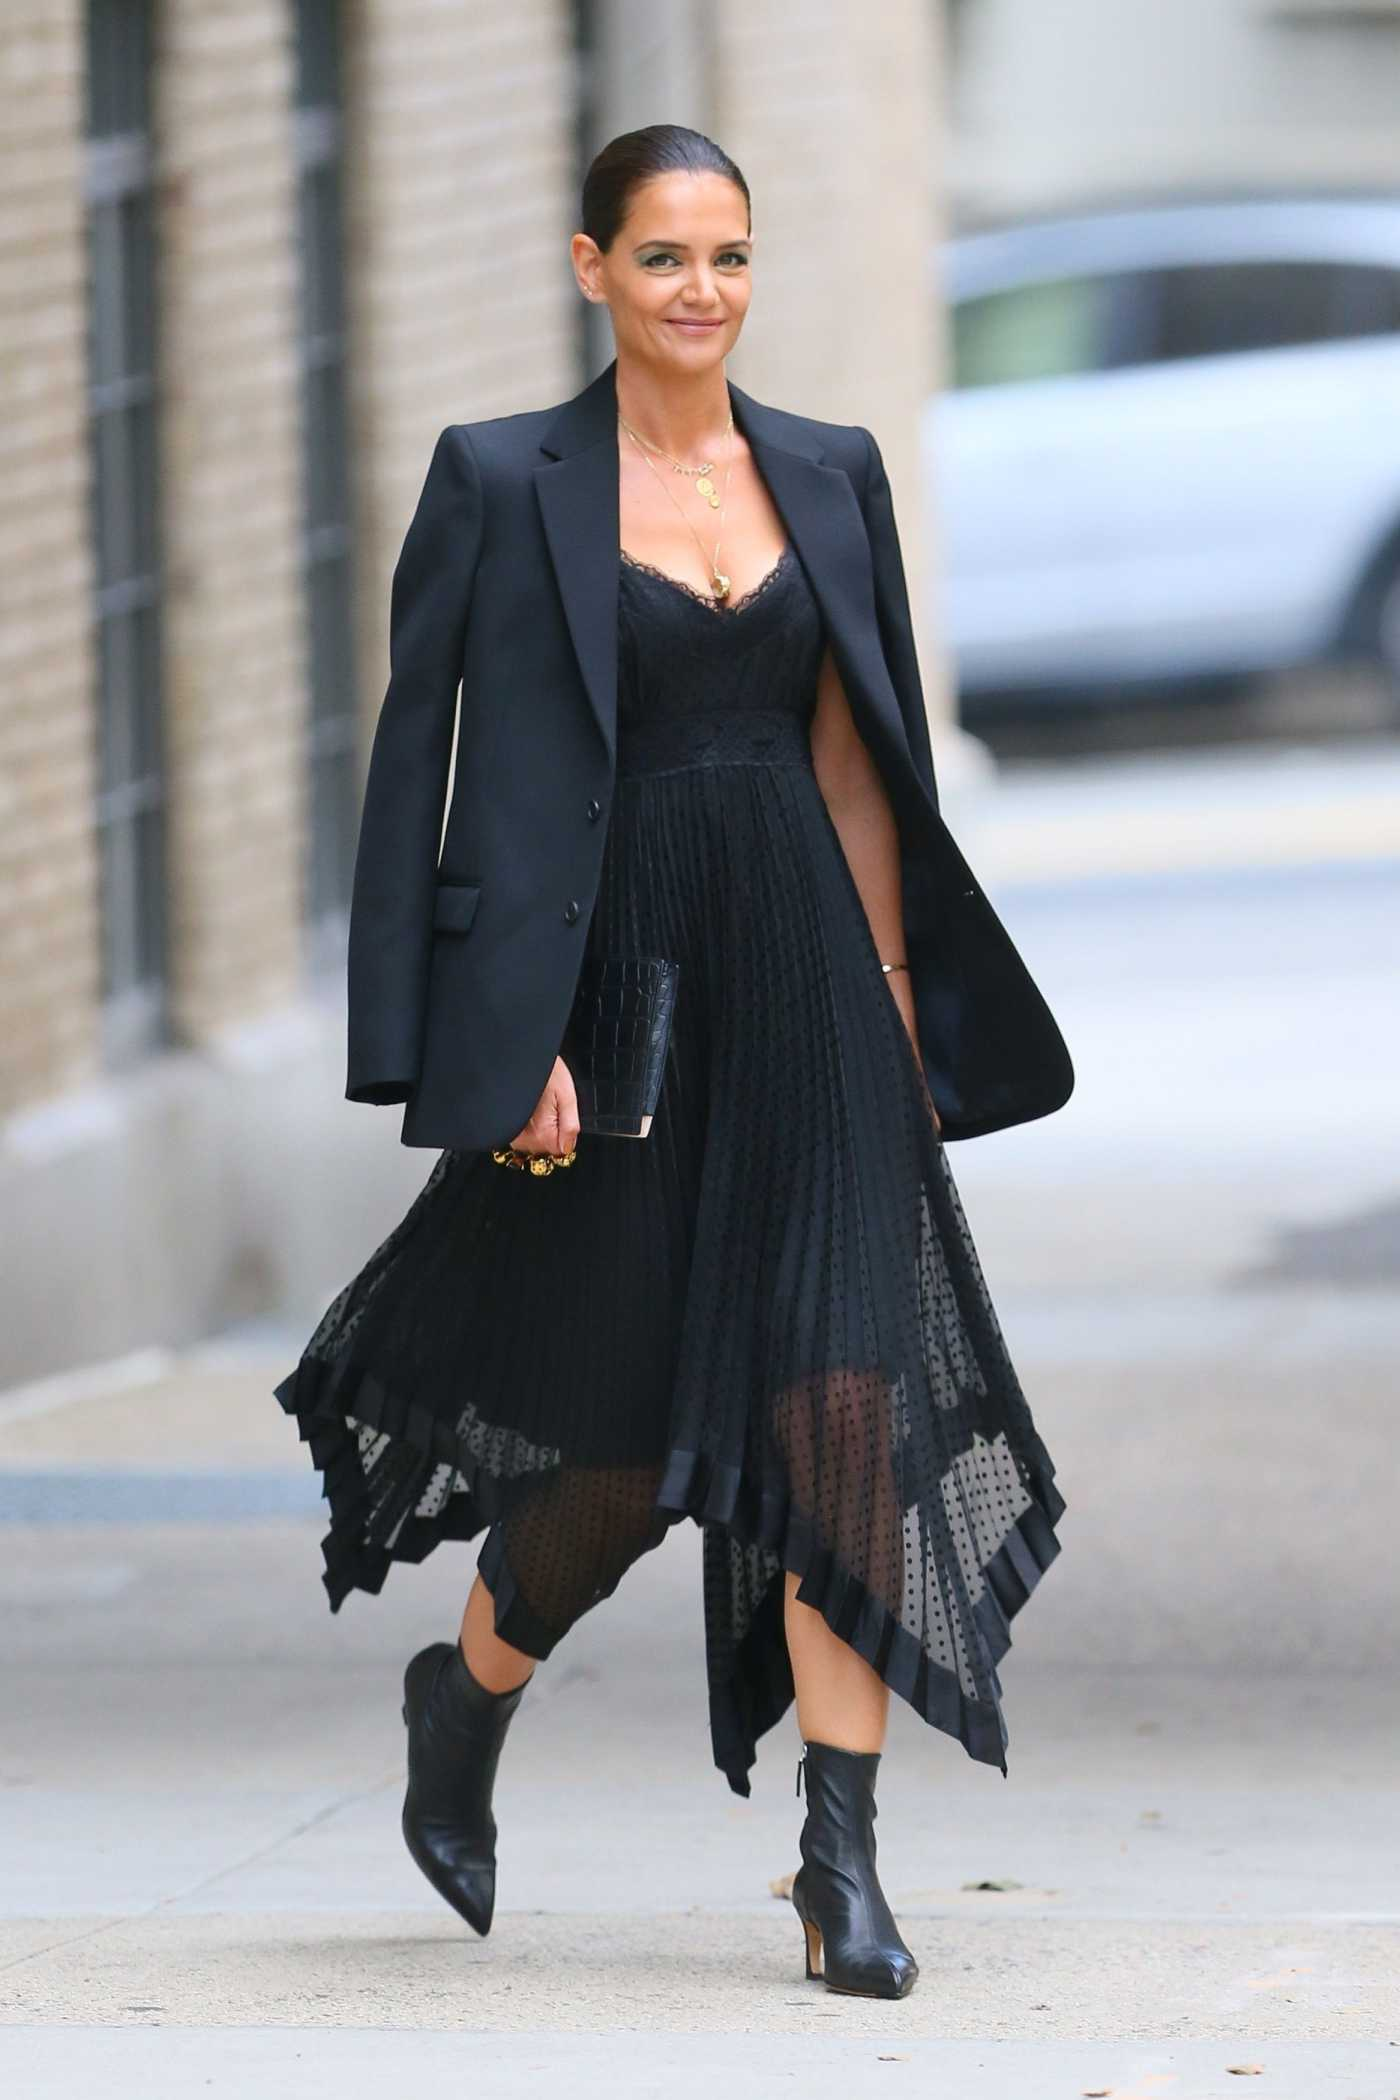 Katie Holmes in a Black Blazer Was Seen Out in NY 09/04/2019